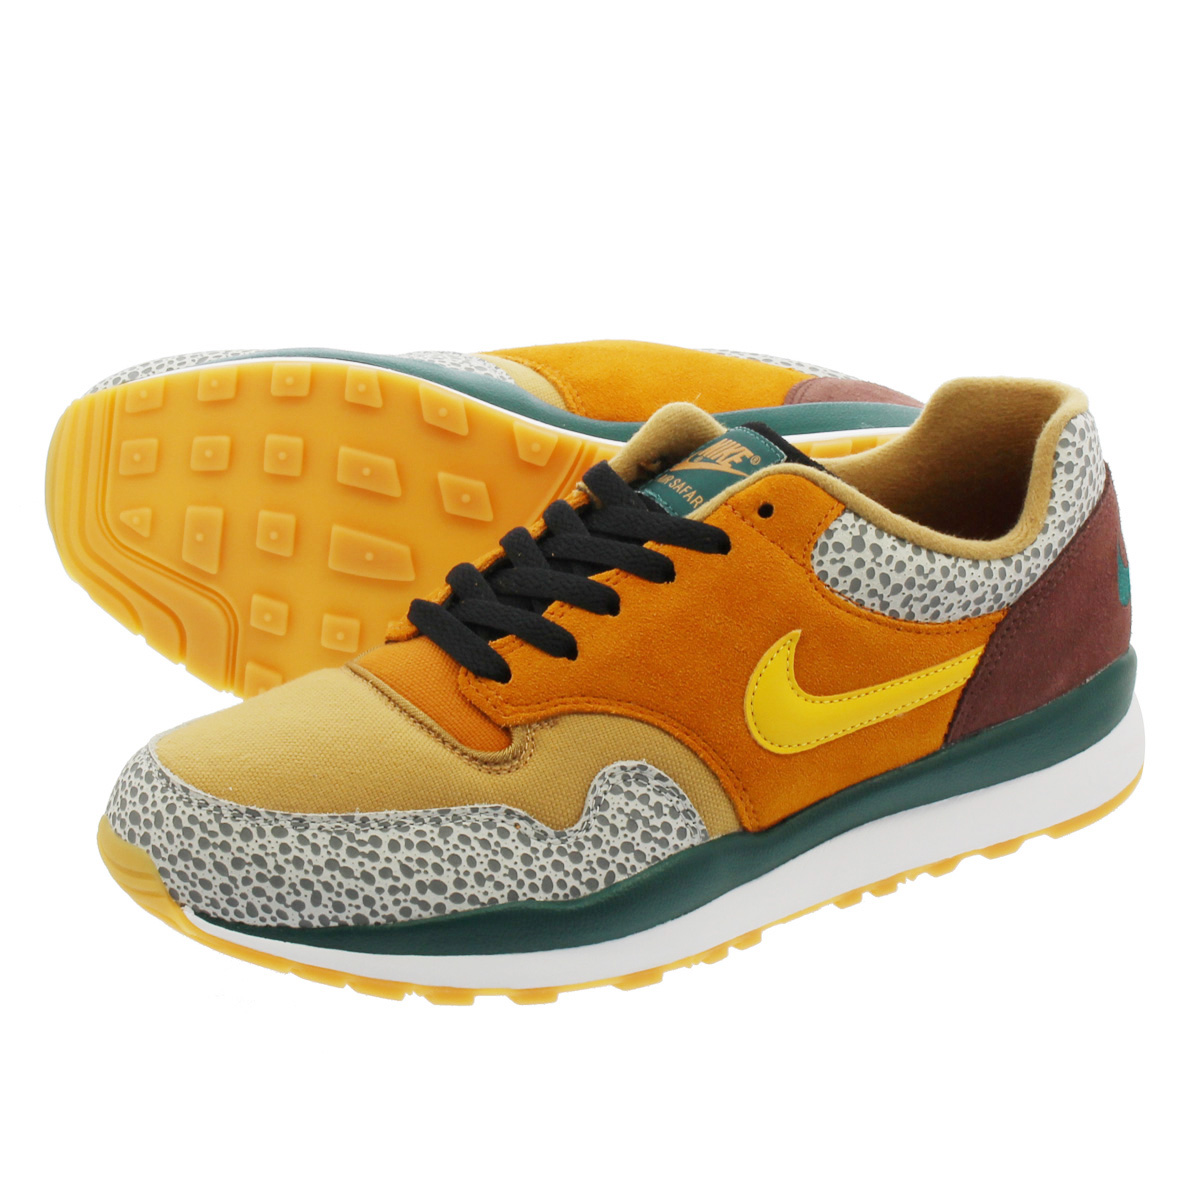 NIKE AIR SAFARI SE ナイキ エア サファリ SE MONARCH/FLAX/MAHOGANY MINK/YELLOW OCHRE ao3298-800